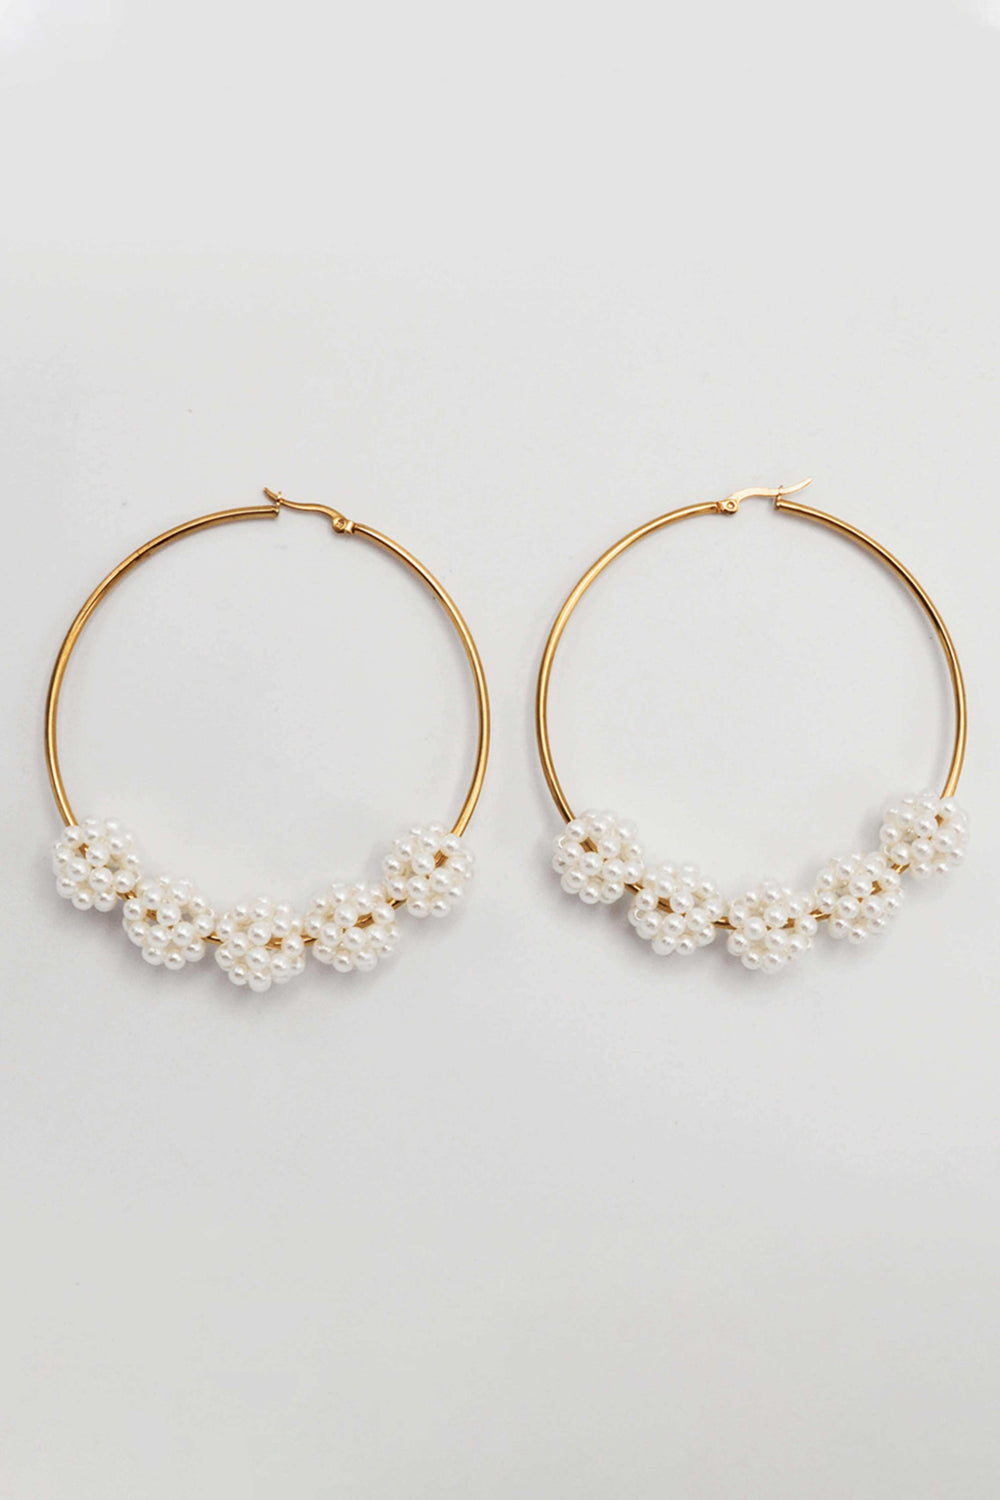 ATHENA EARRINGS - Chic Le Frique